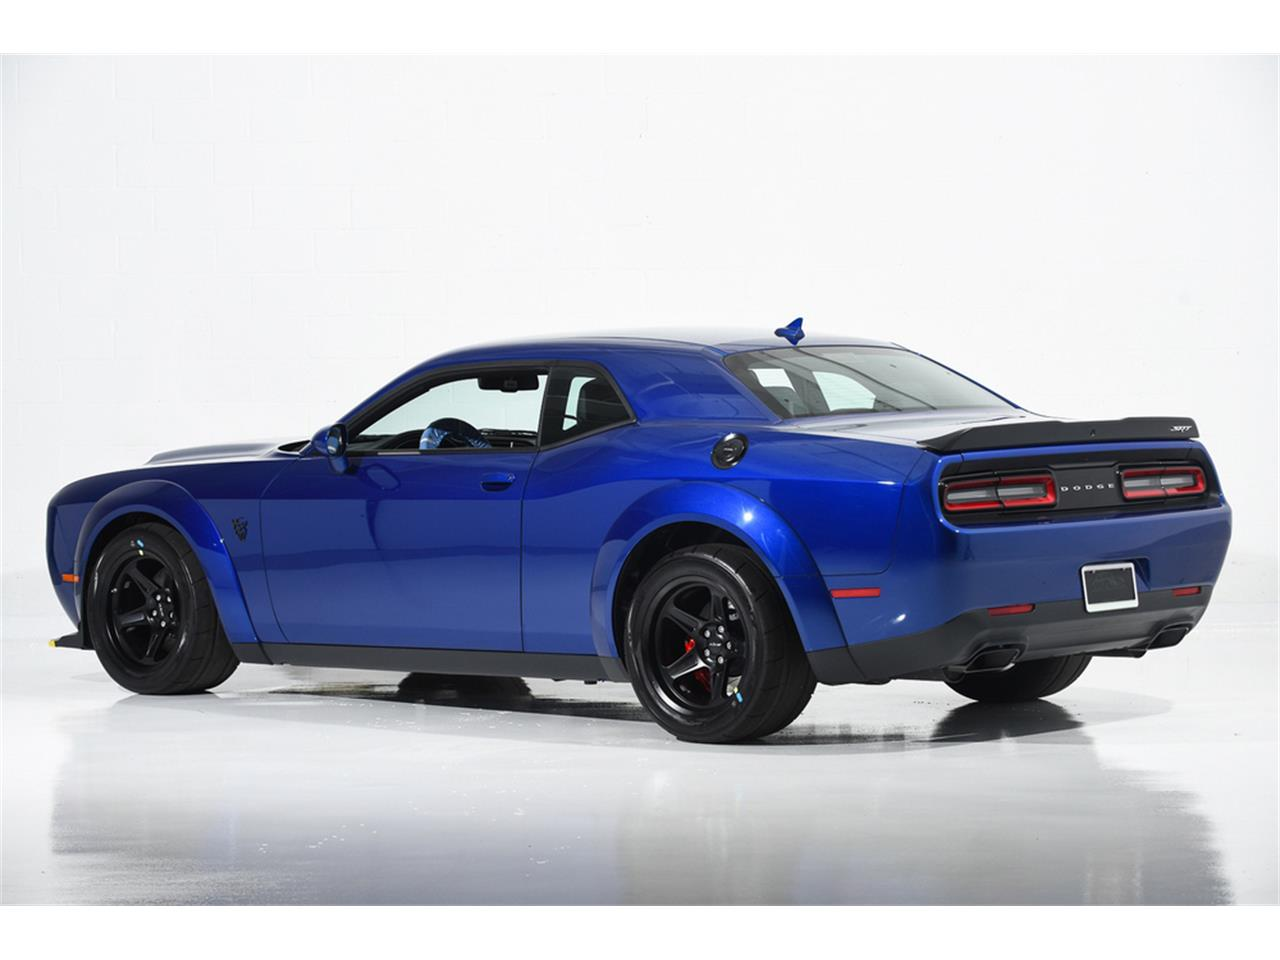 2018 Dodge Challenger SRT Demon (CC-1252998) for sale in Las Vegas, Nevada